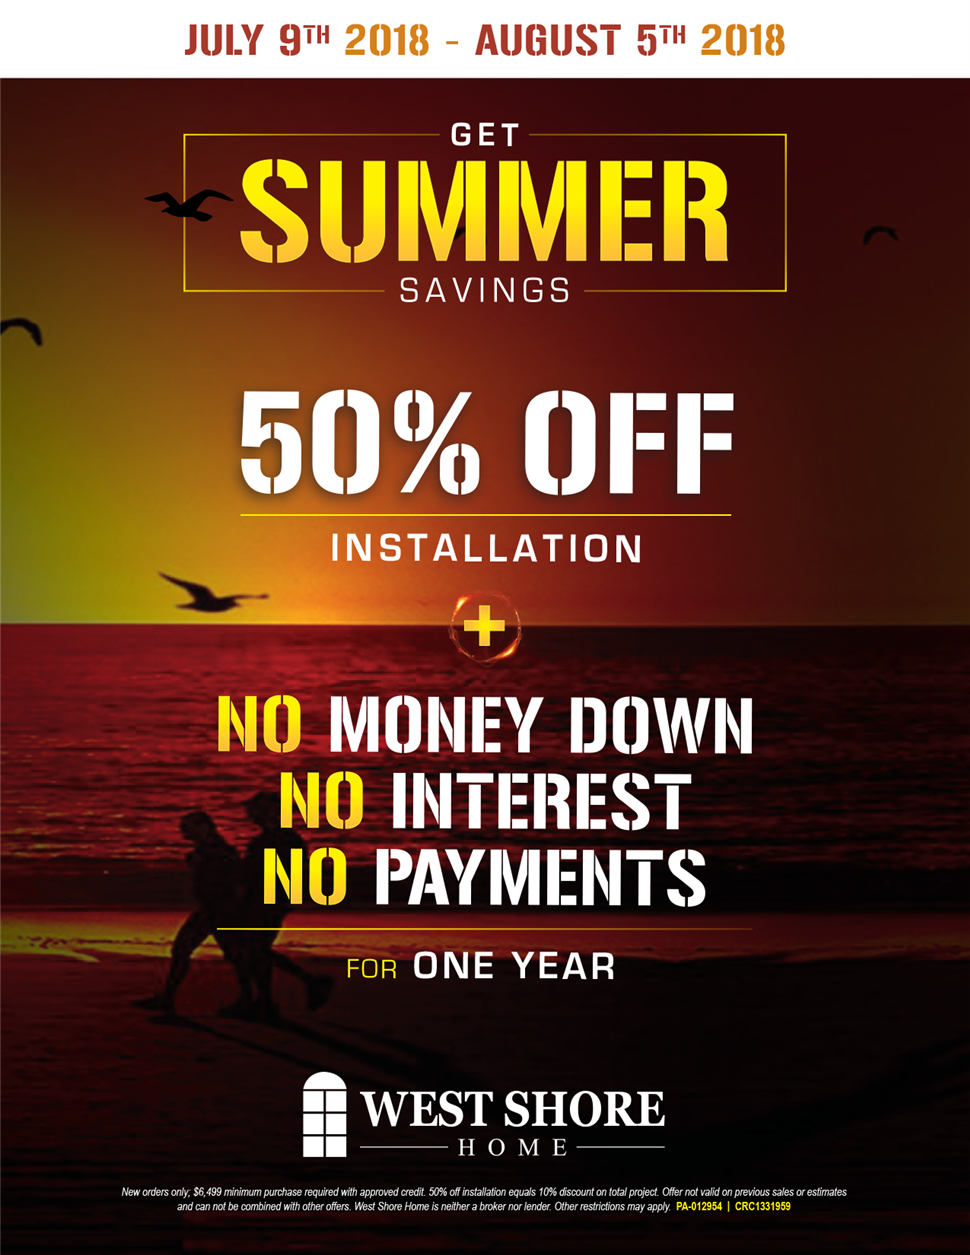 GET SUMMER SAVINGS